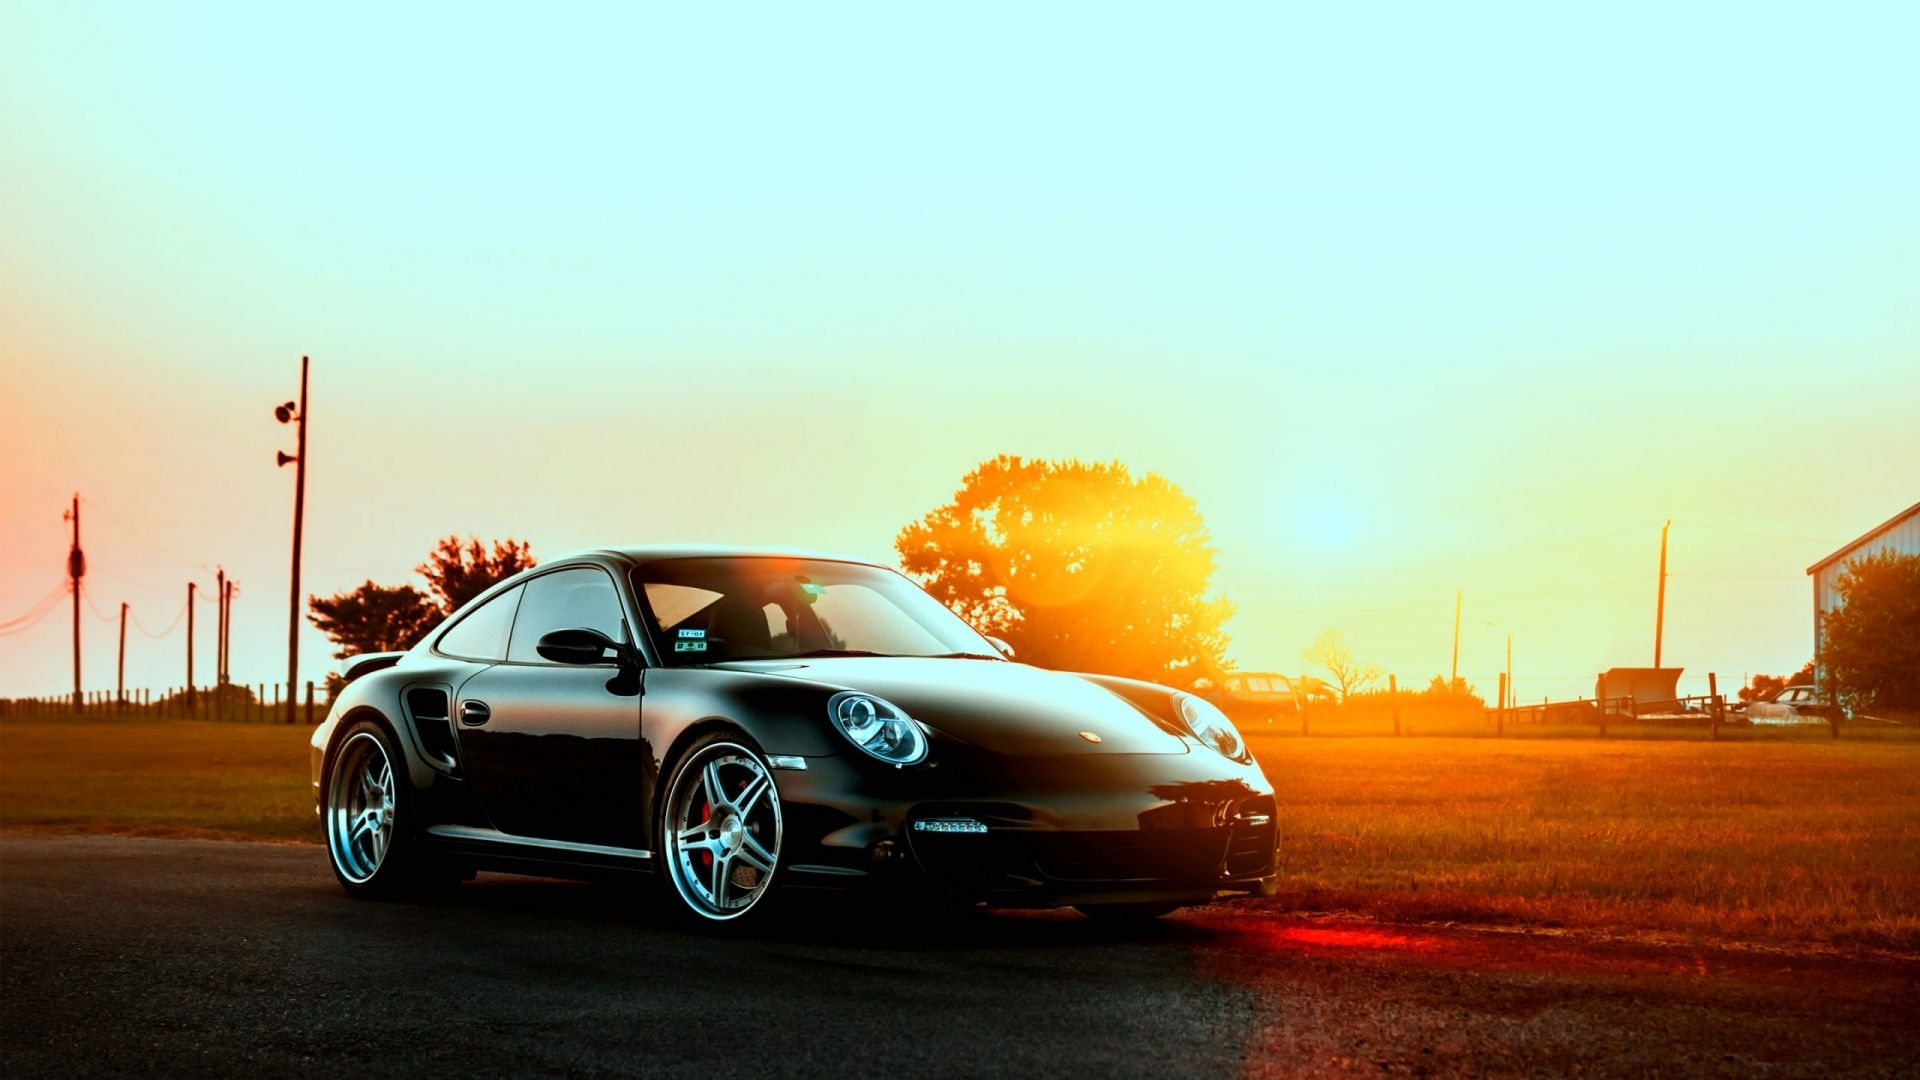 Weekly Car Insurance Cost With Affordable Premium Rates Online Car Wallpapers Car Insurance Hd Wallpapers Of Cars